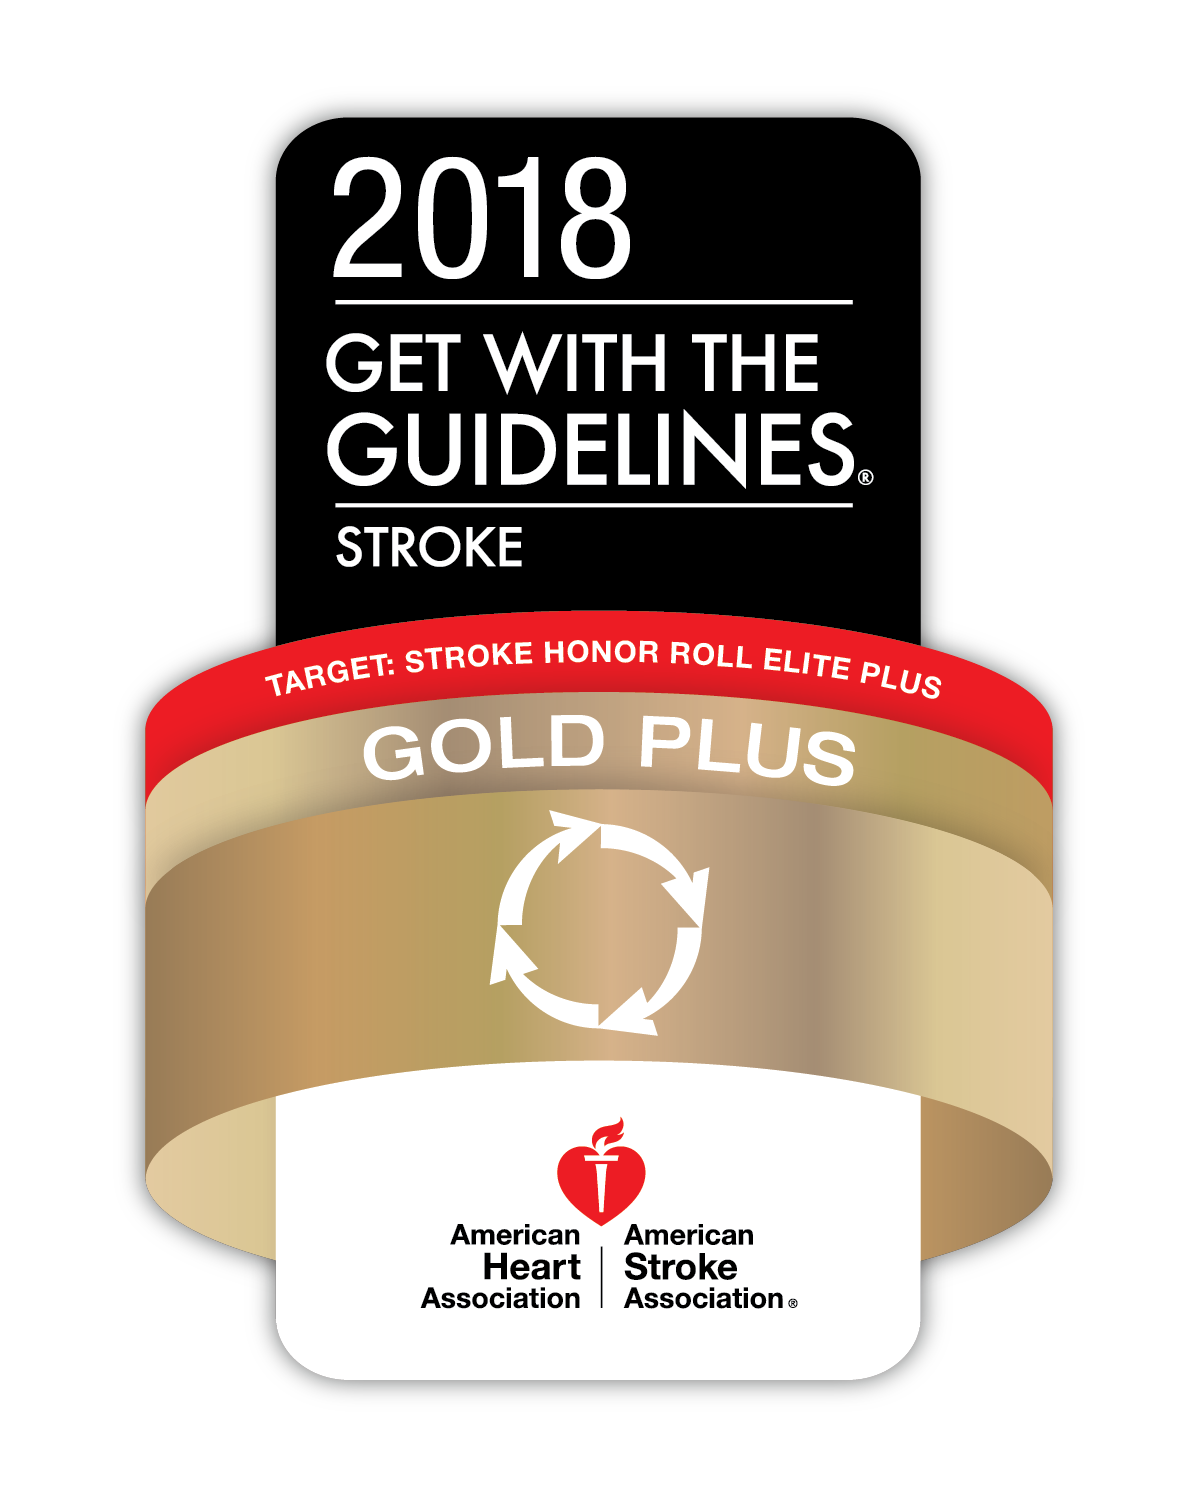 stroke gold plus award logo